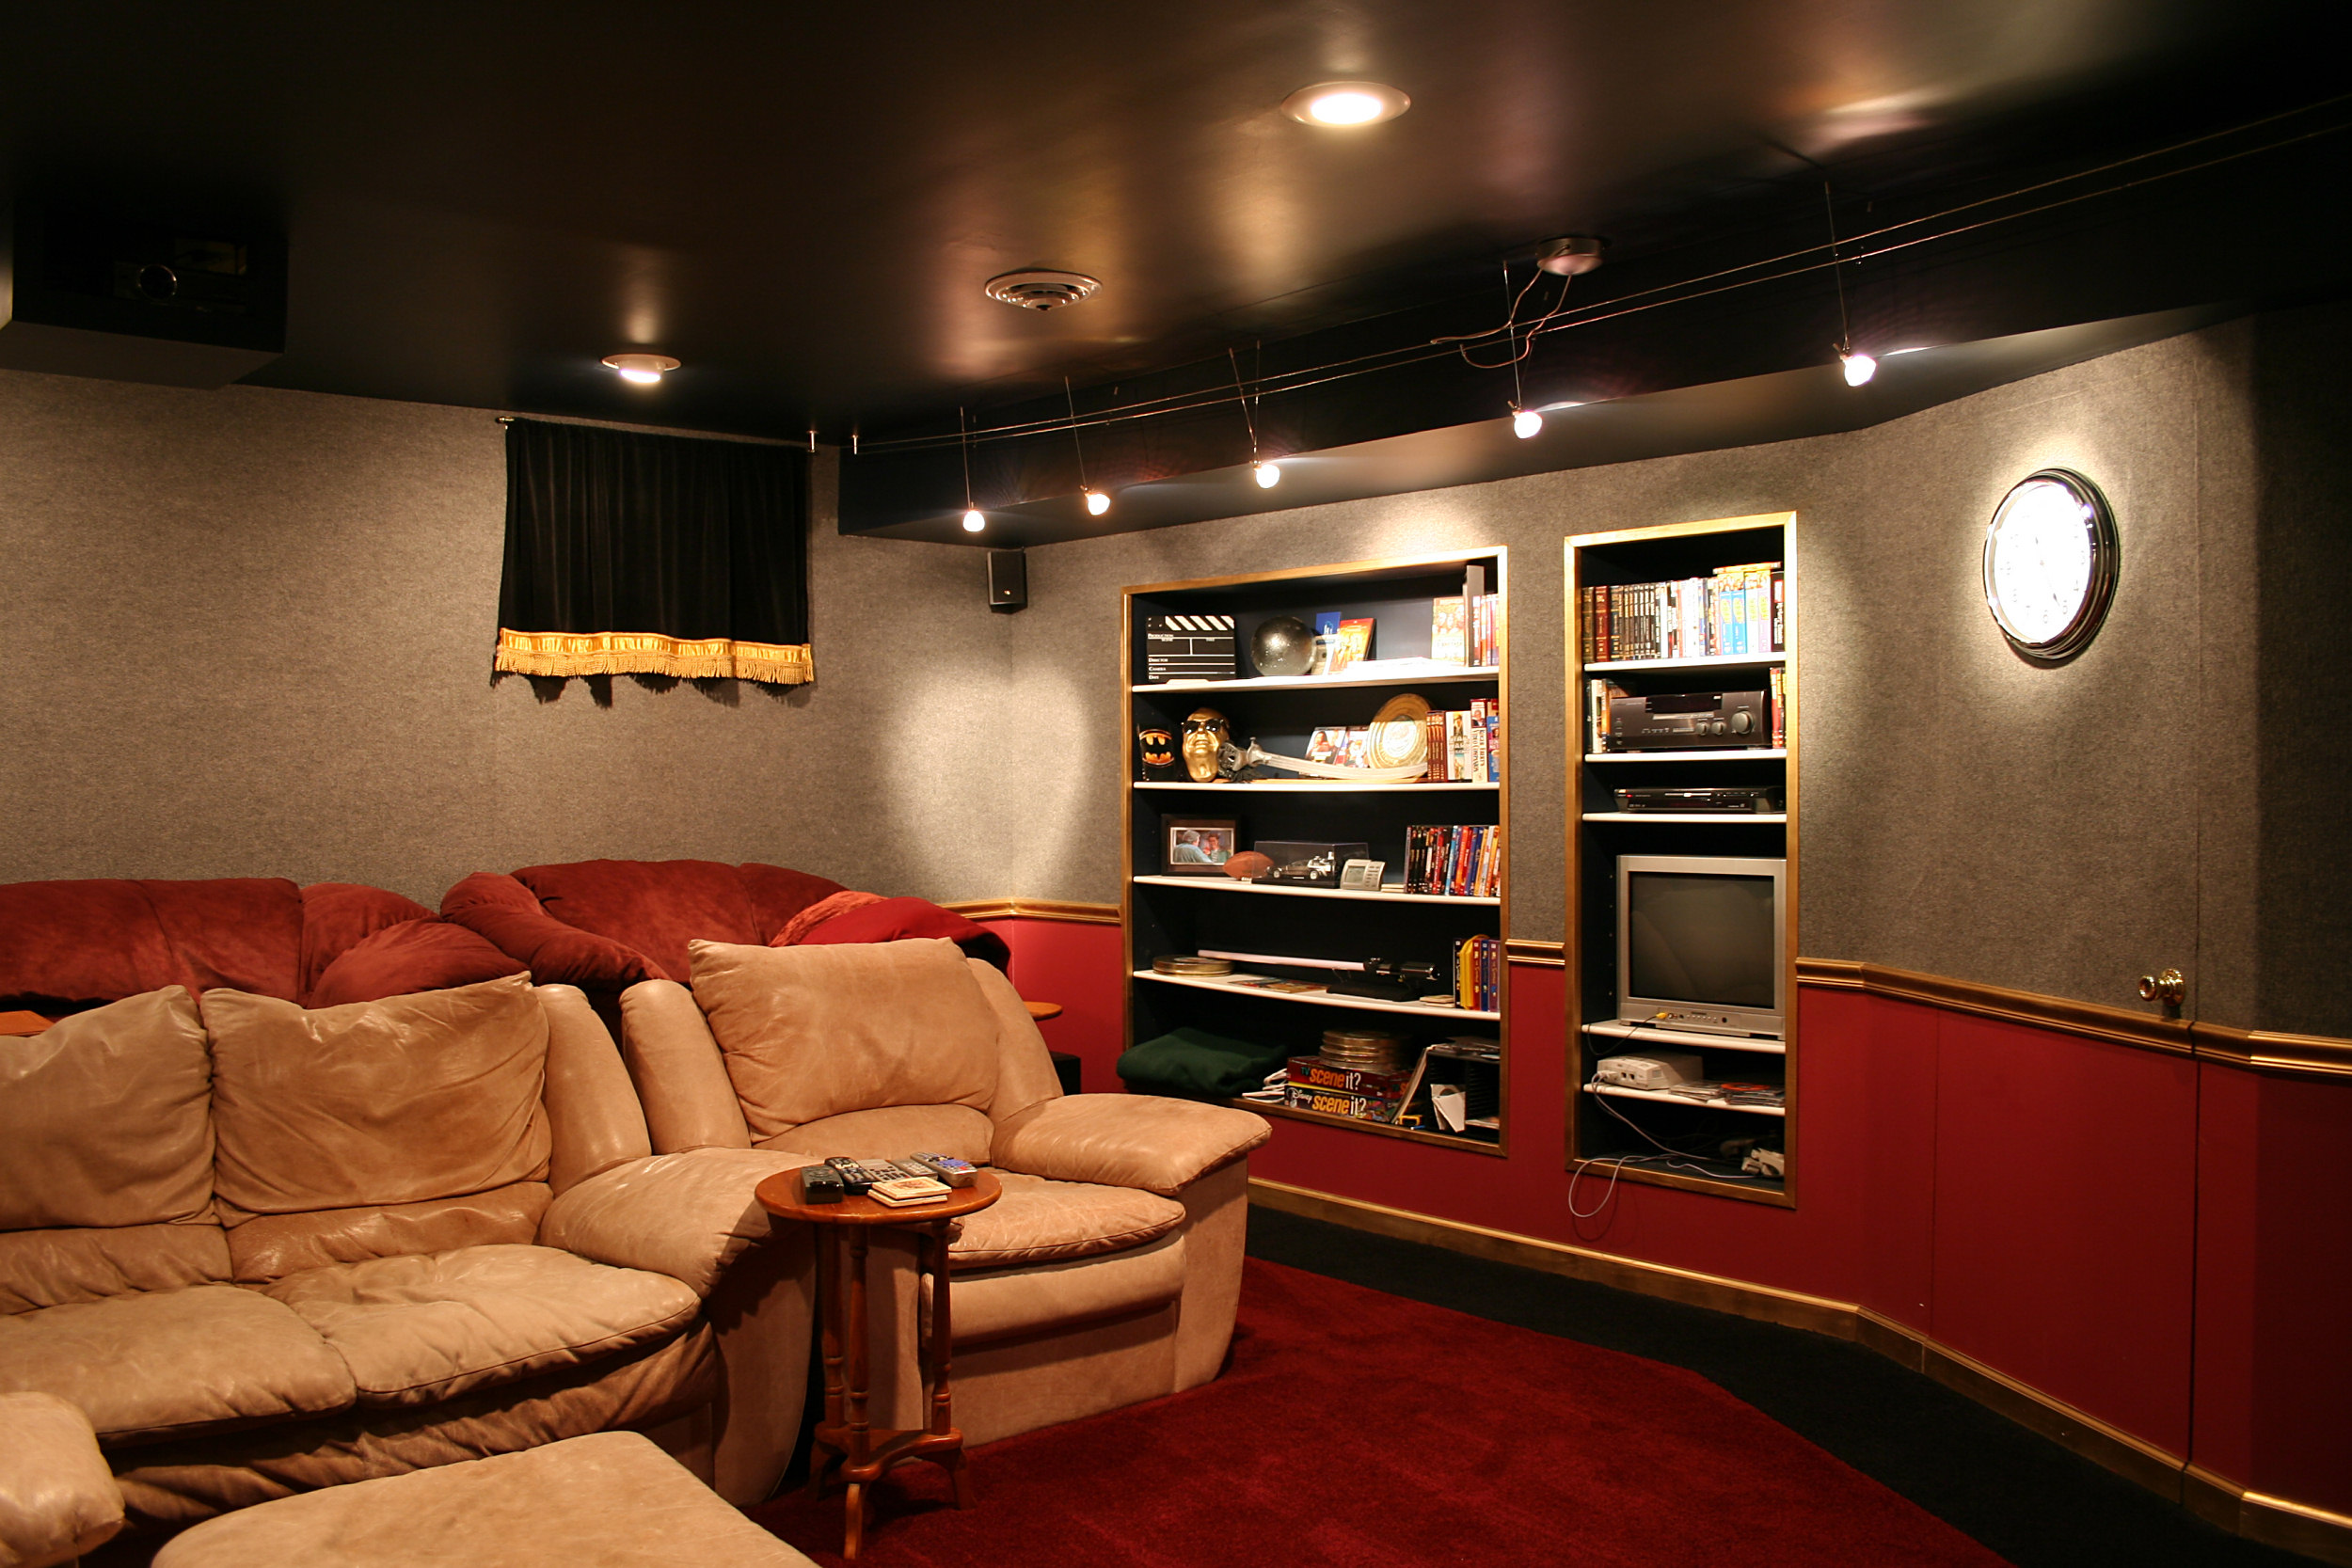 Garage Conversion Man Cave Turn Garage Into Man Cave Intended One Of The Major Issues Turning